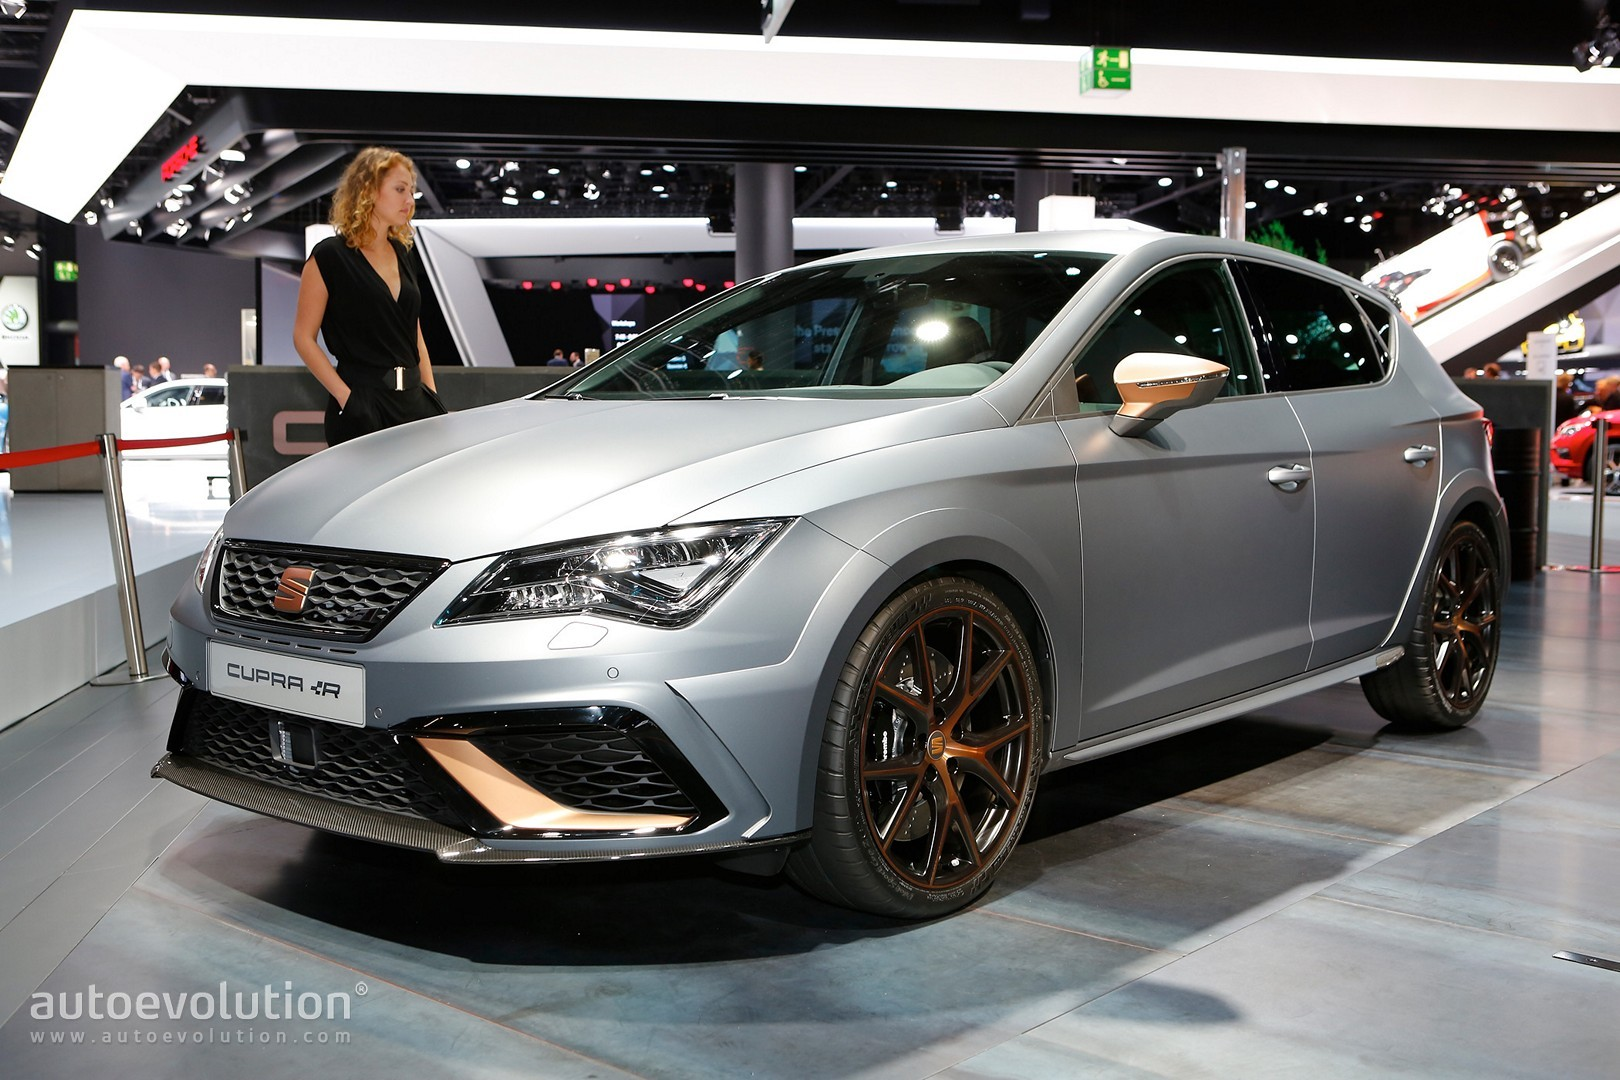 Leon Cupra R S Carbon Splitter And Copper Accents Shine At